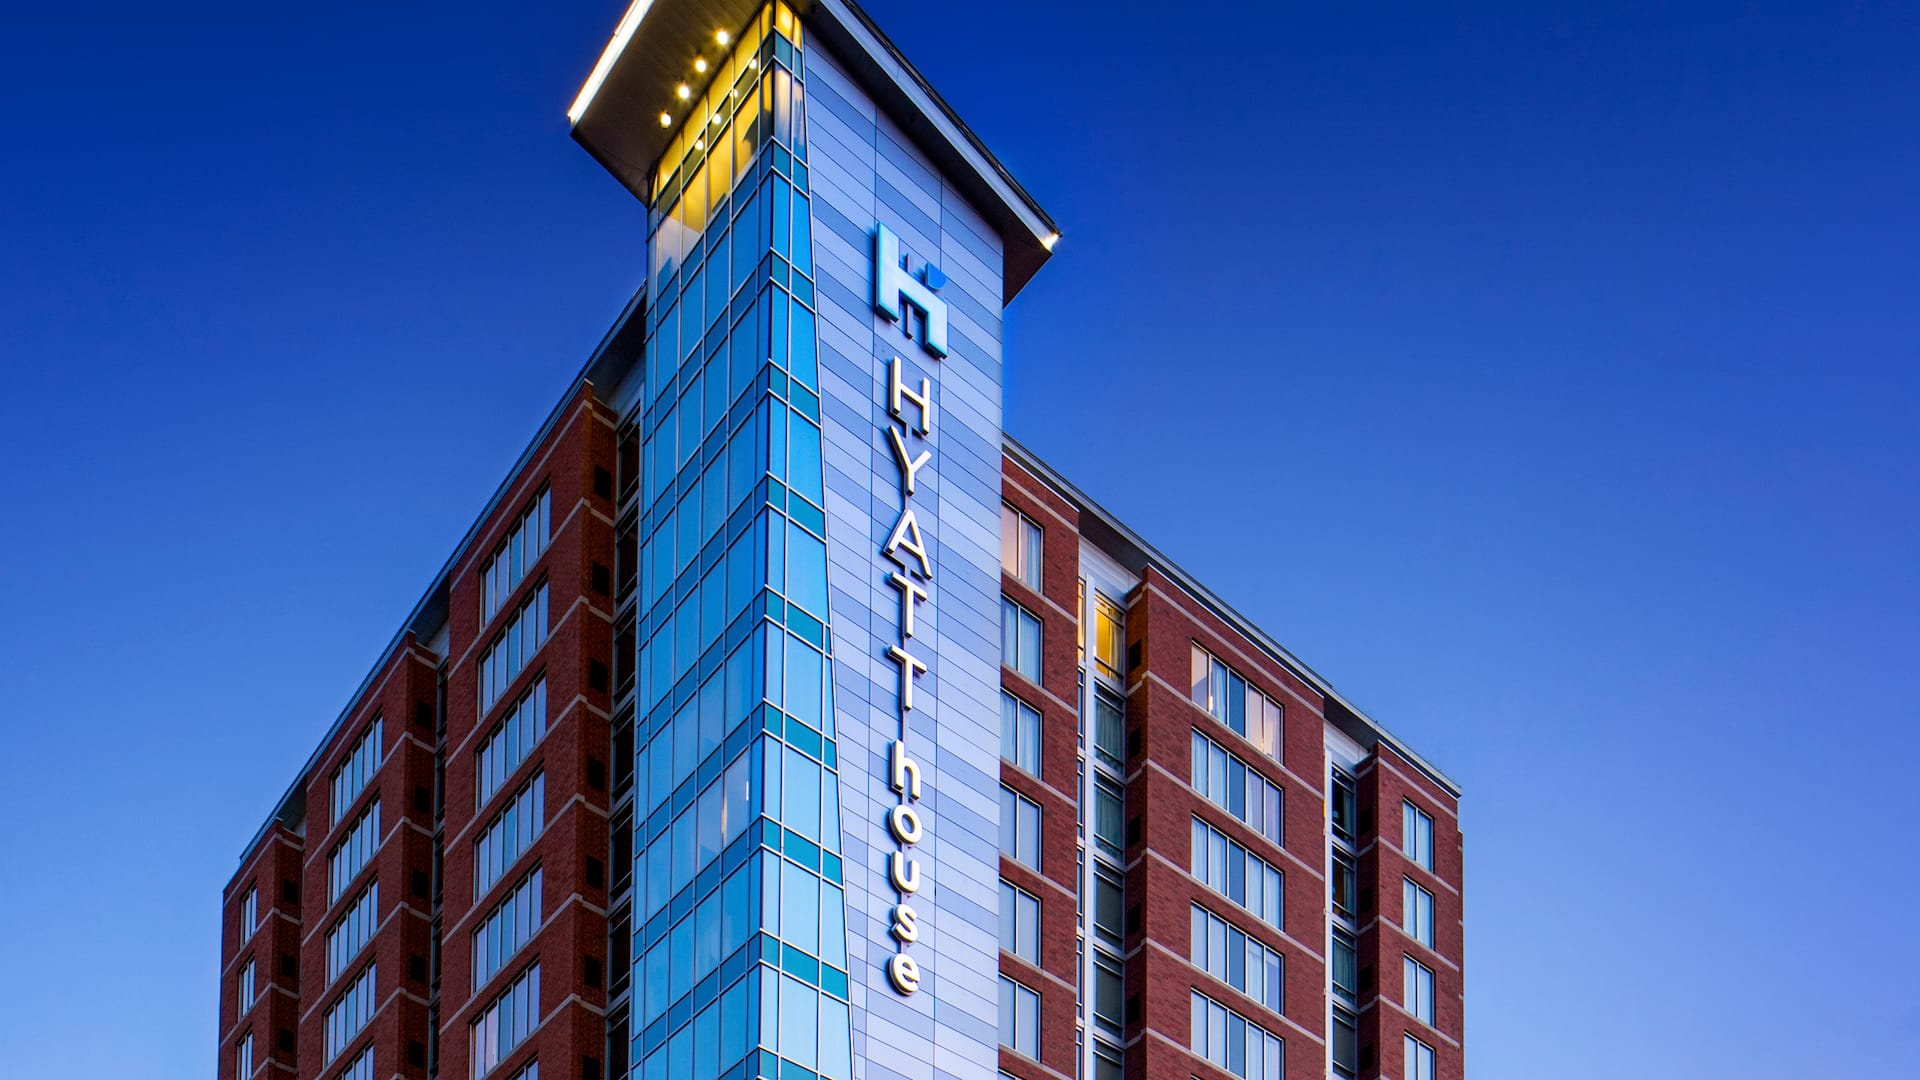 Hyatt House Charlotte Center City Exterior